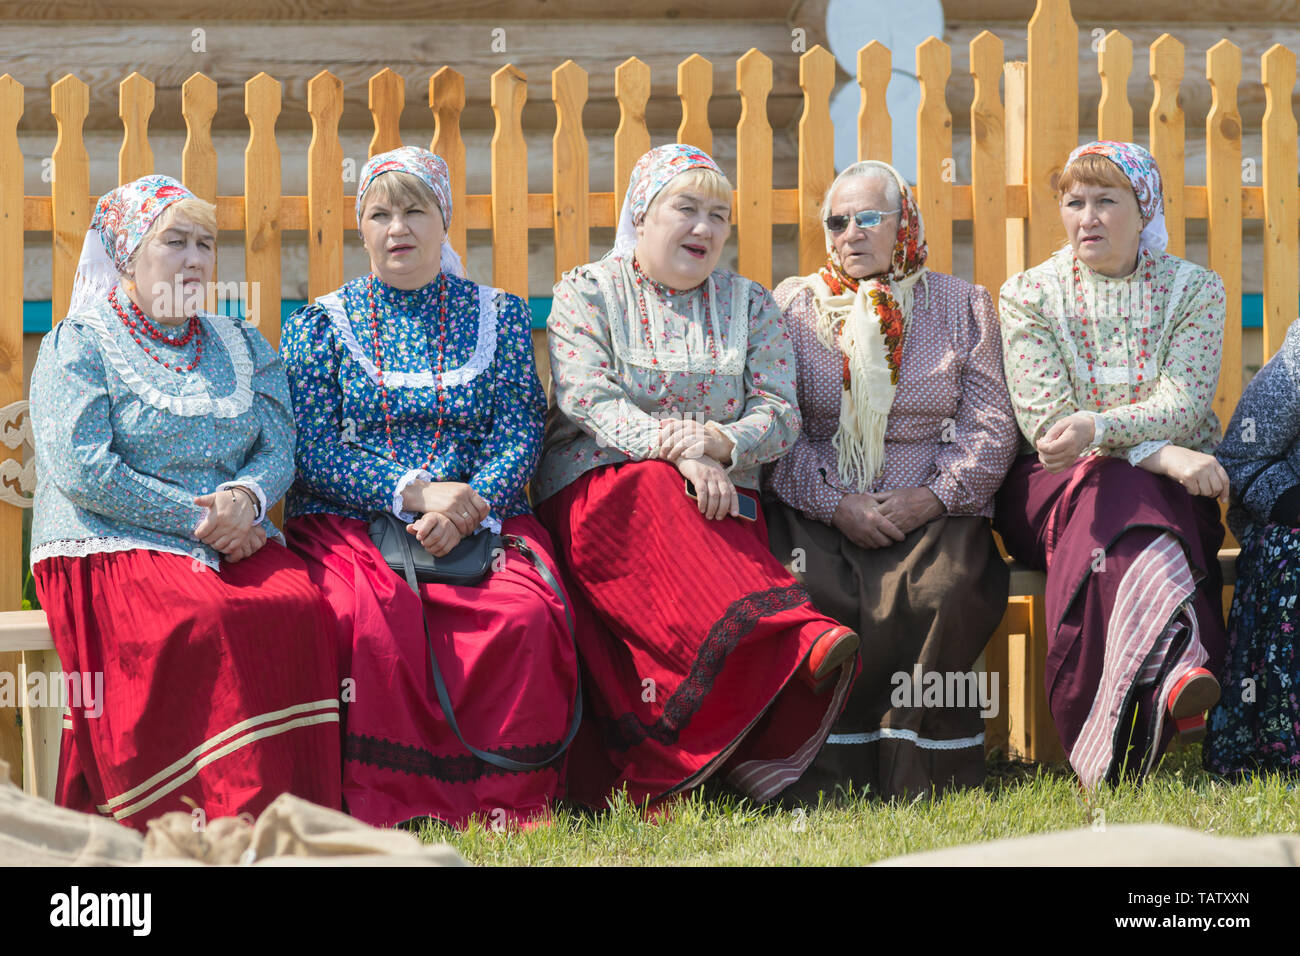 RUSSIA, Nikolskoe village, Republic of Tatarstan 25-05-2019: A group of old women sitting on the bench and talking. Mid shot Stock Photo